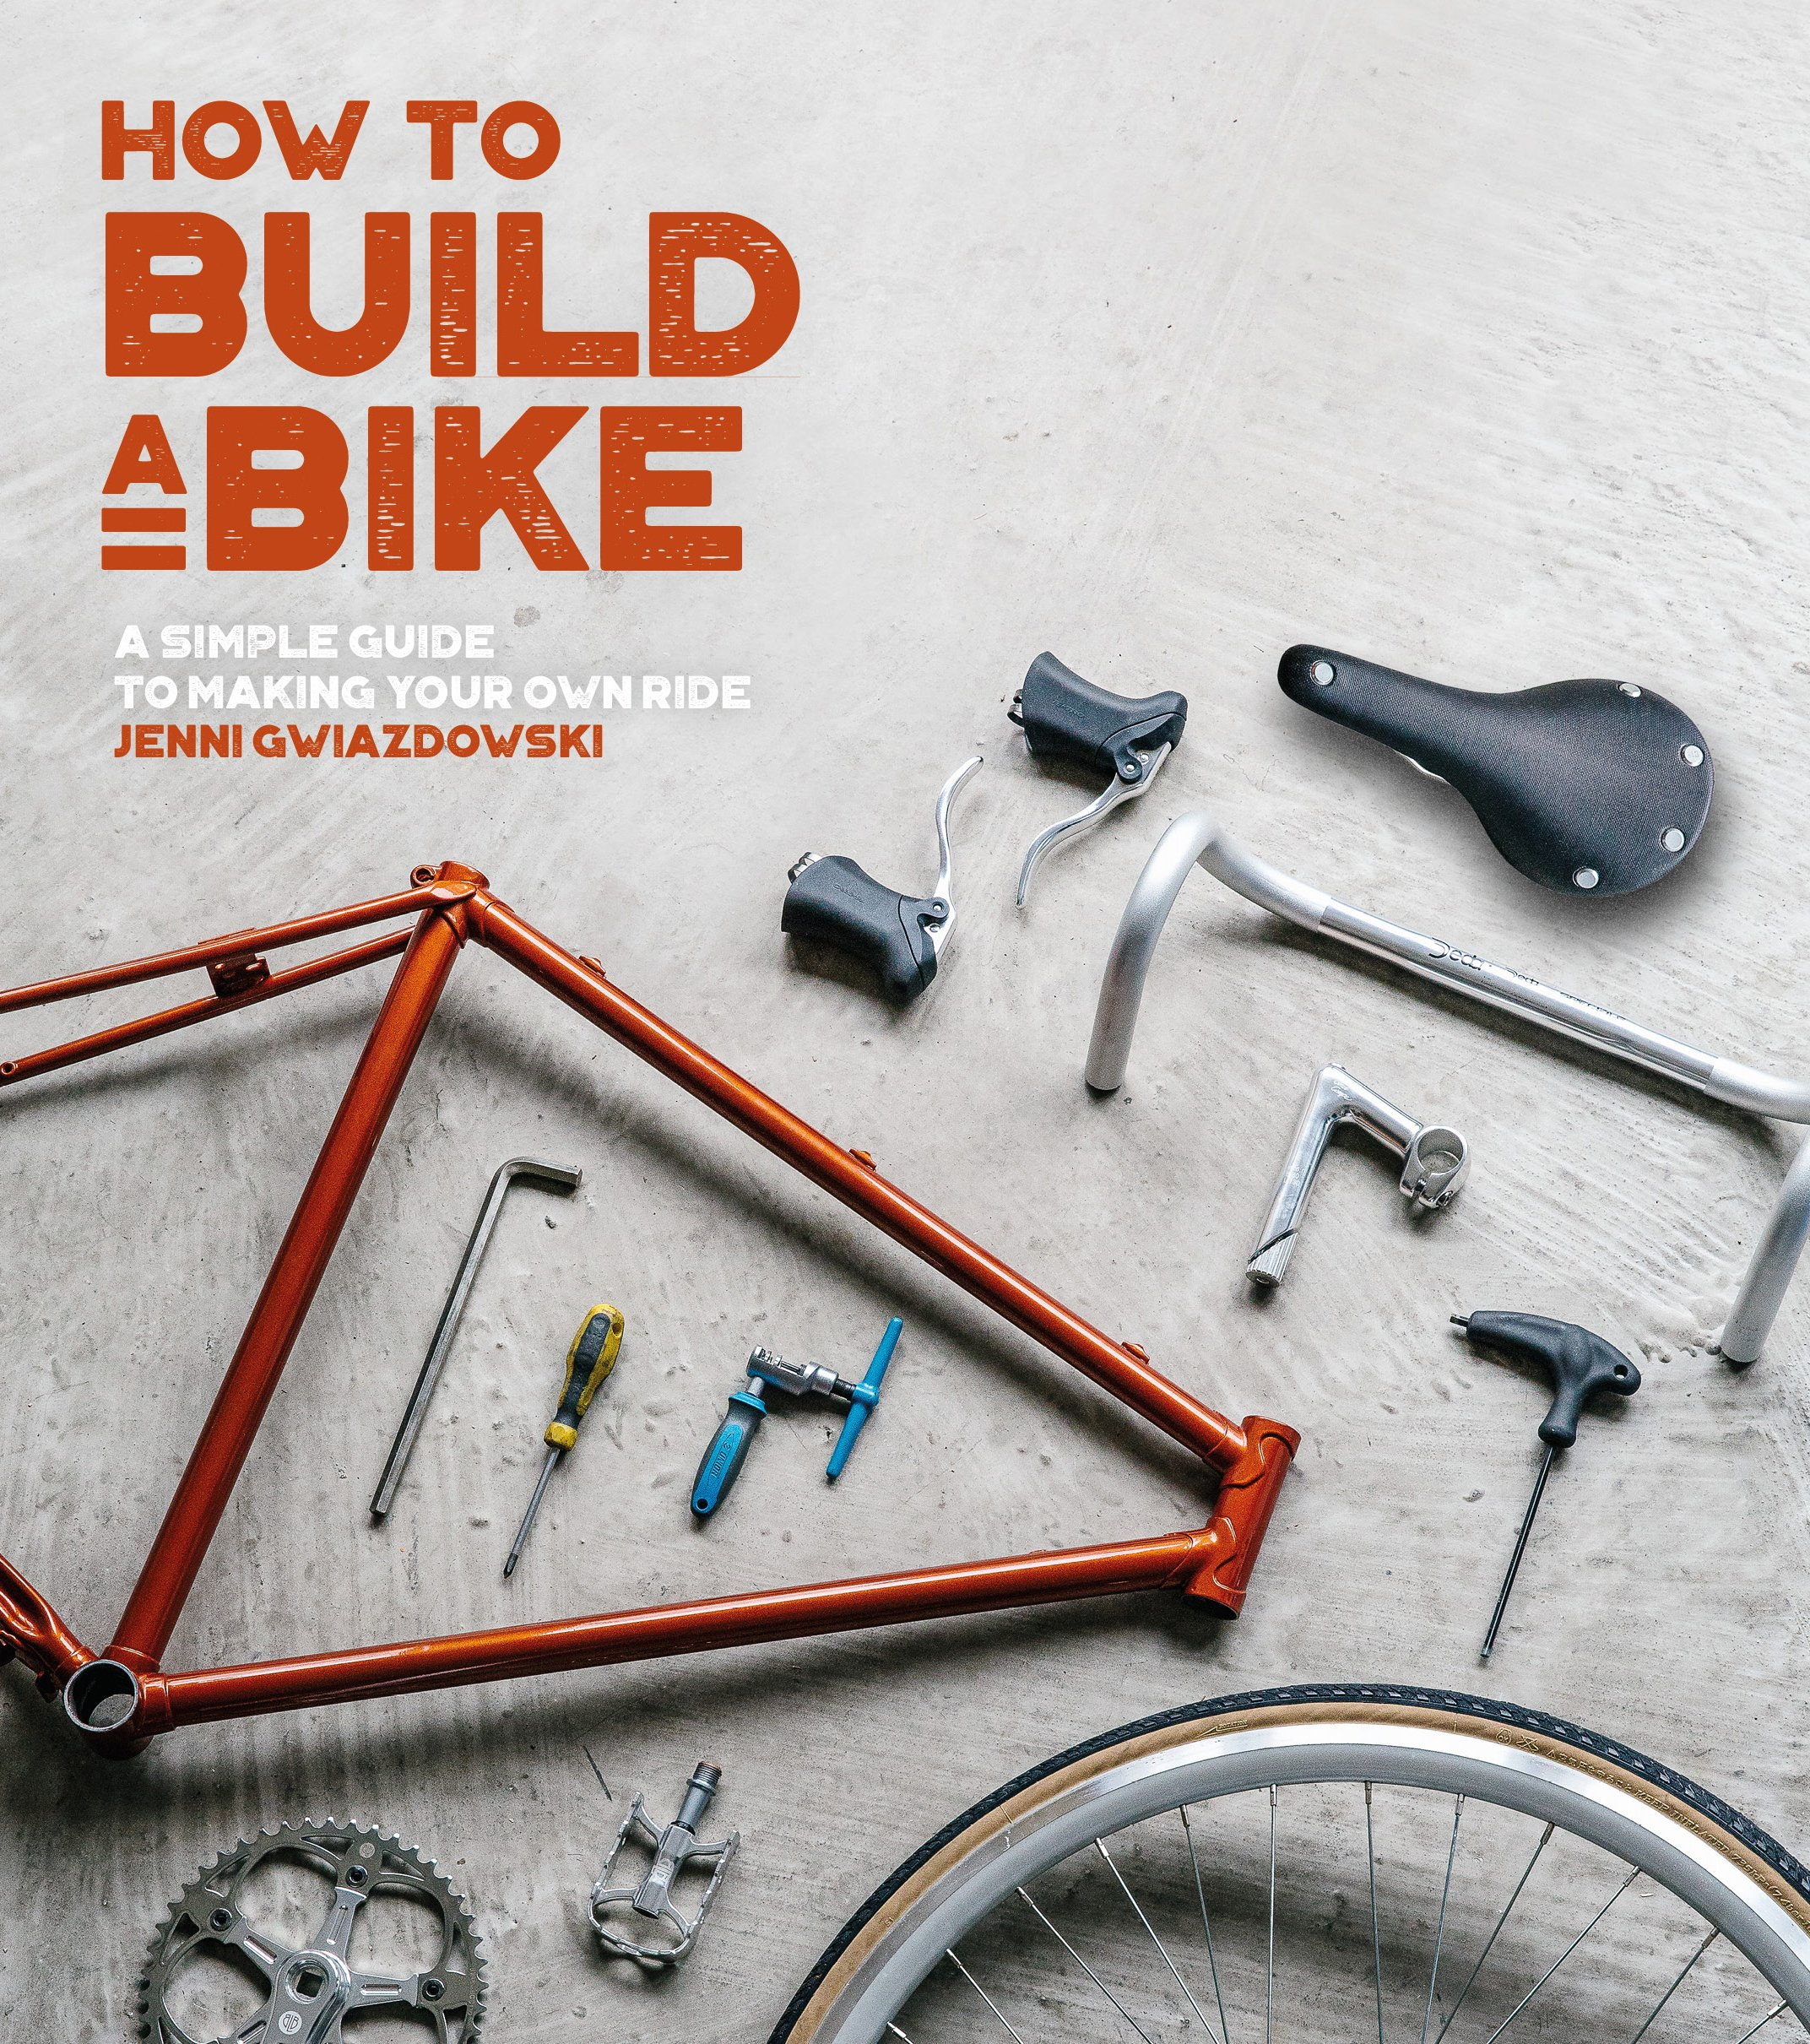 How To Build A Bike A Simple Guide To Making Your Own Ride Paperback